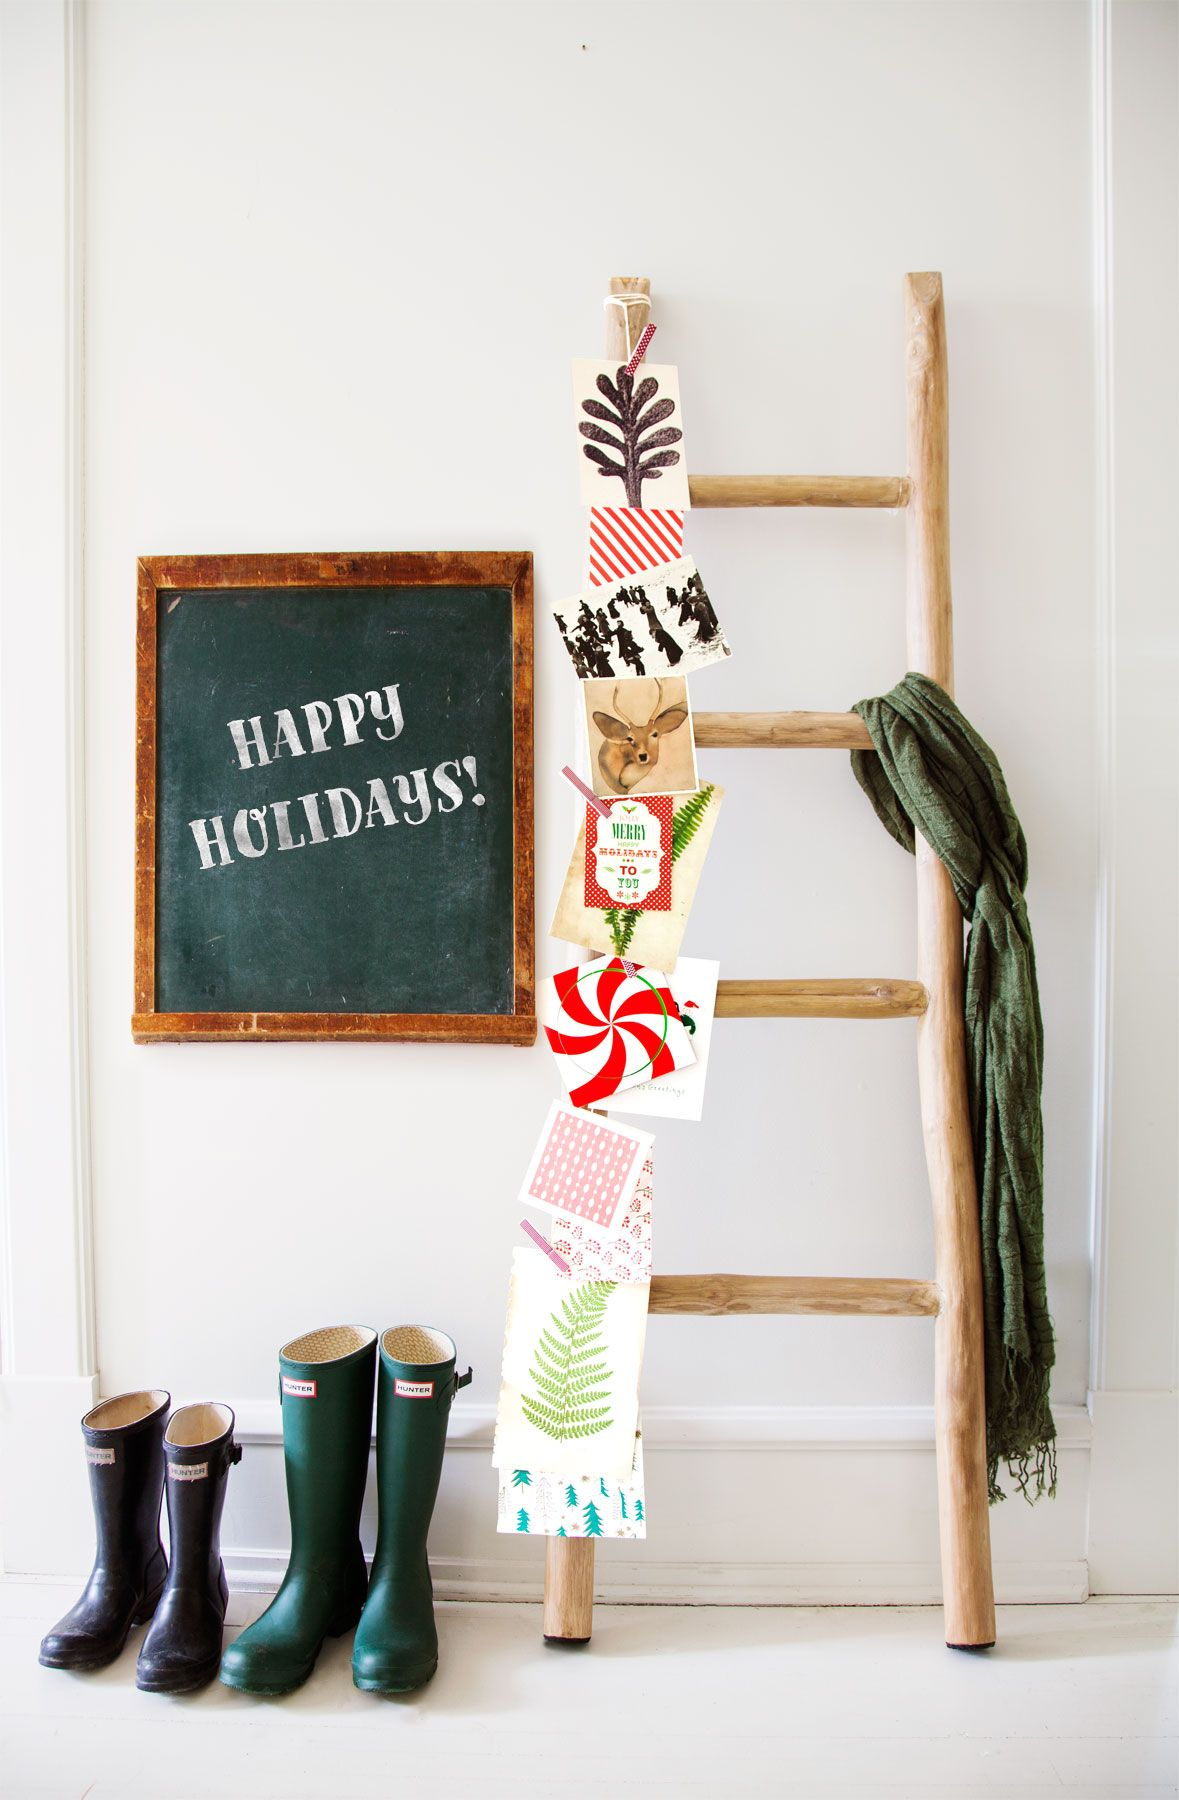 100 Christmas Decorating Ideas That Will Make Your Home Merrier Than